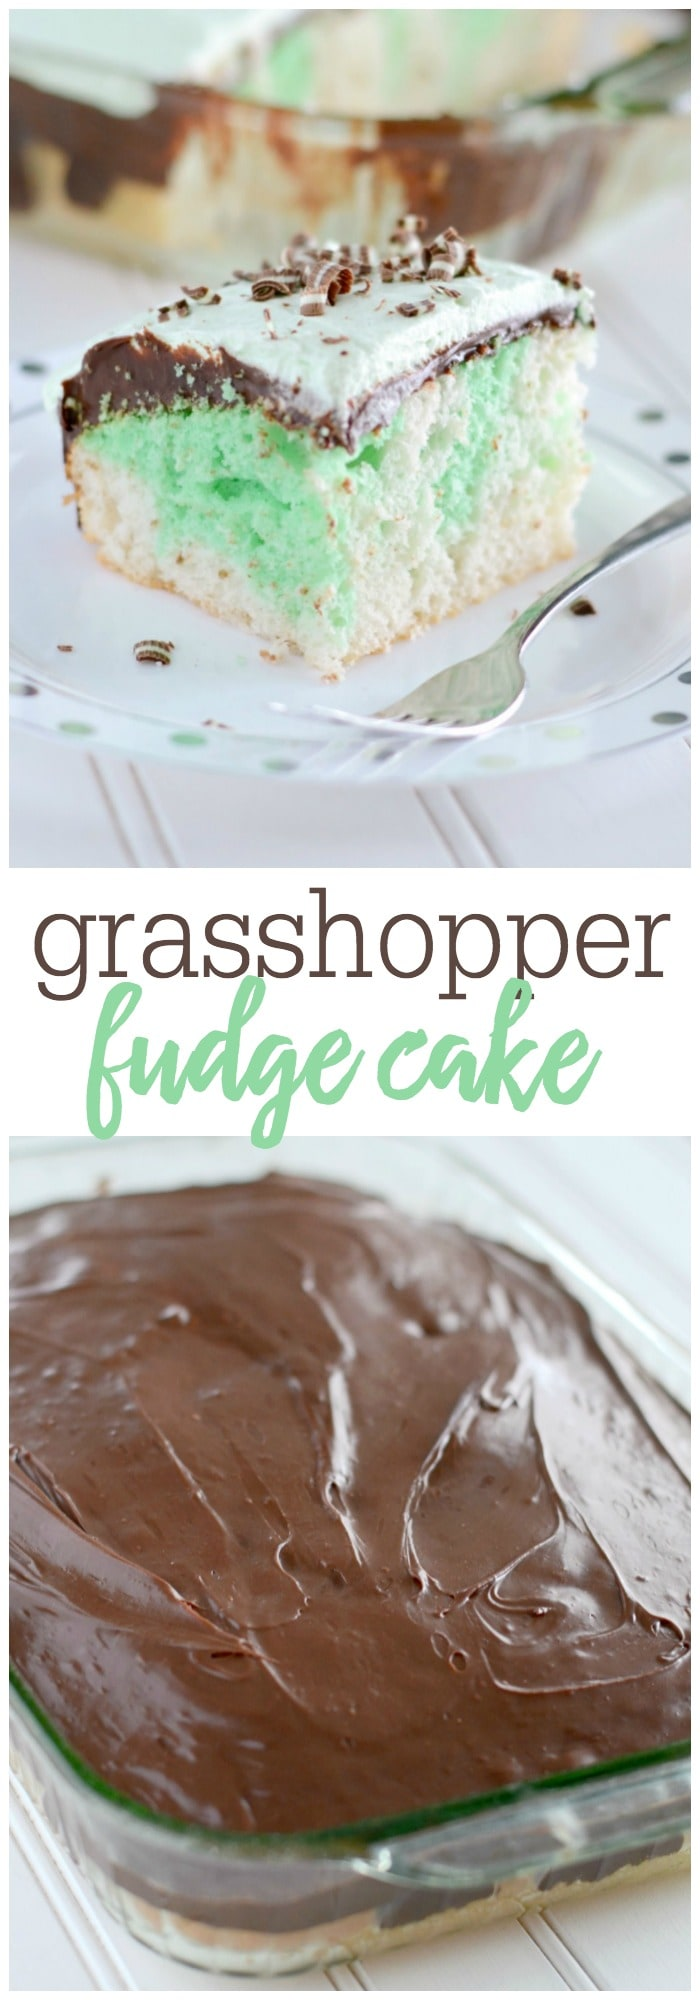 Grasshopper Fudge Cake - this light and fluffy cake is a perfect cake for St. Patrick's Day. Just the right amount of mint extract in the cake, topped with a double layer made of chocolate frosting and minty whipped cream!